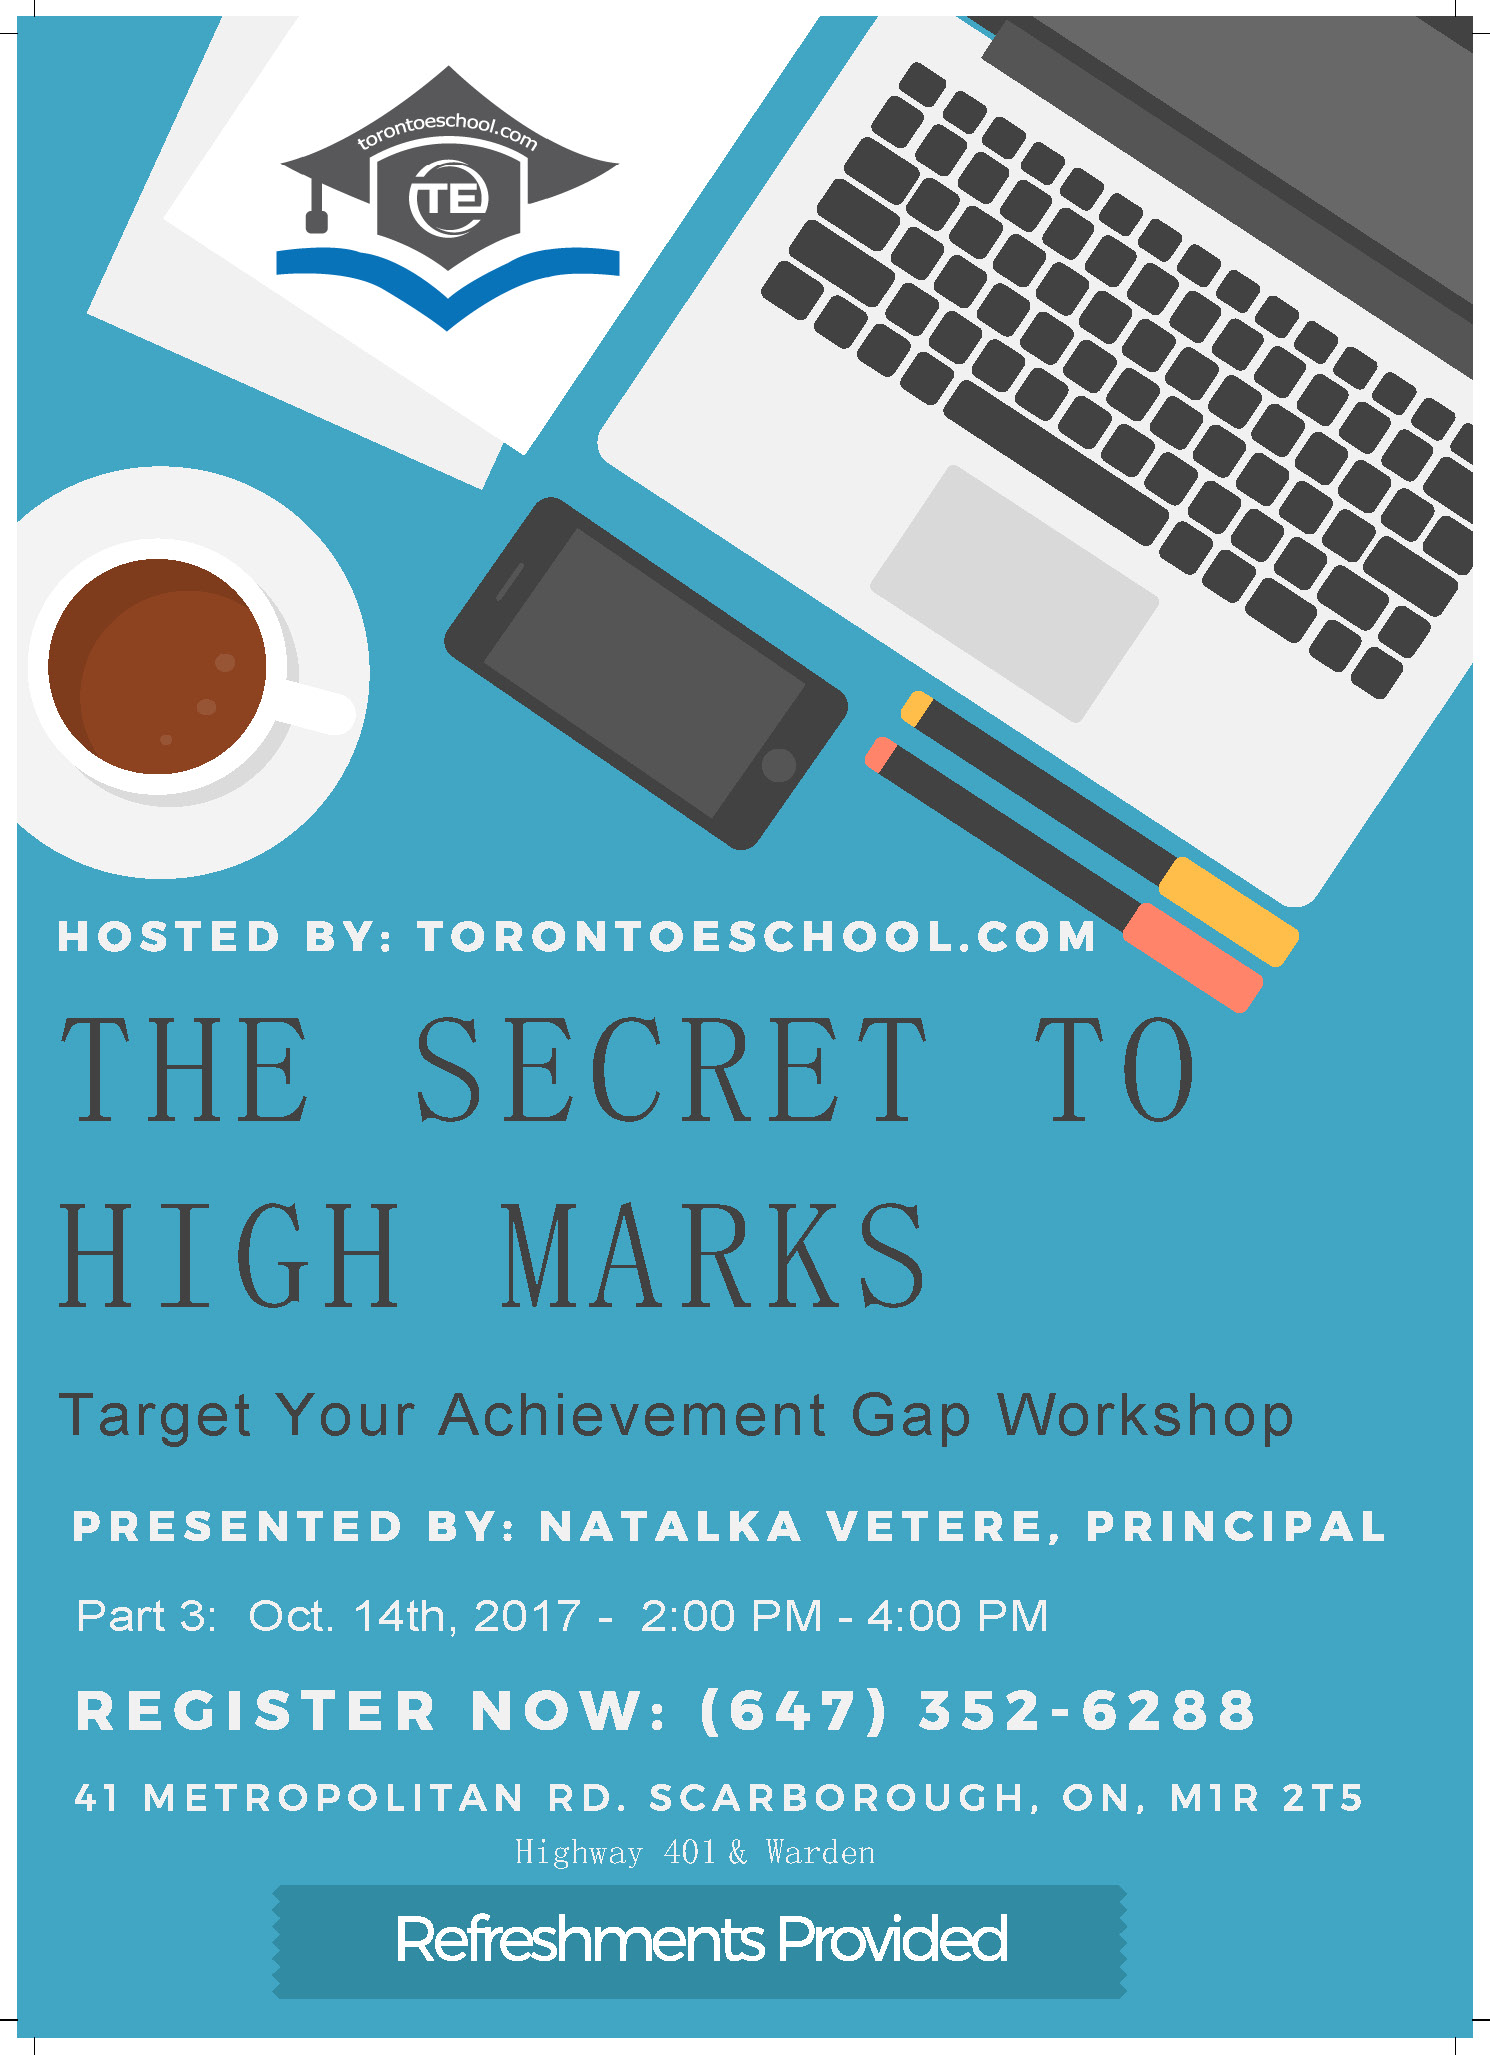 The Secret to High Mark Seminar